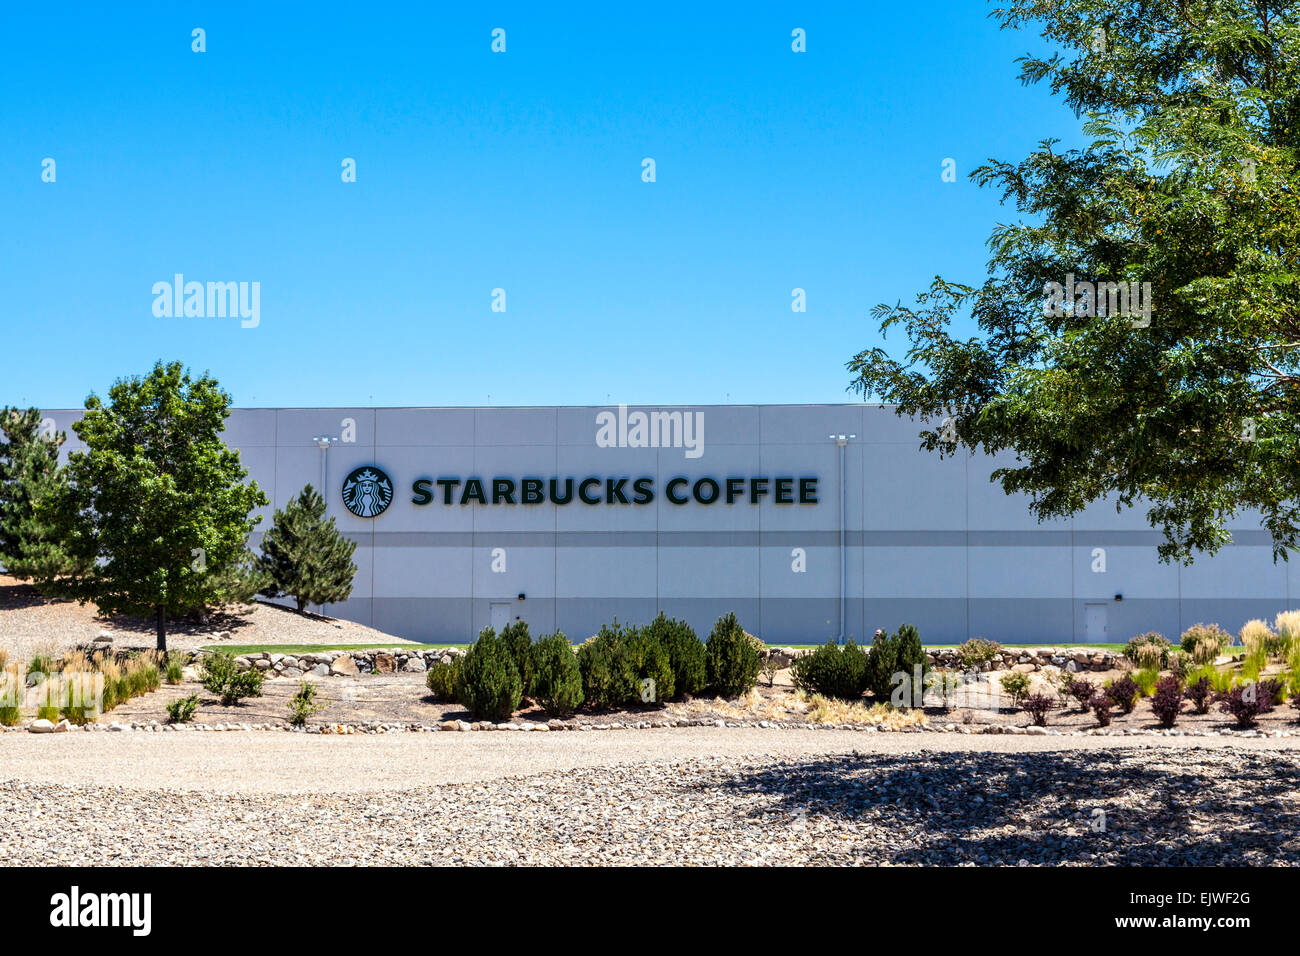 starbucks coffee chain stock photos u0026 starbucks coffee chain stock